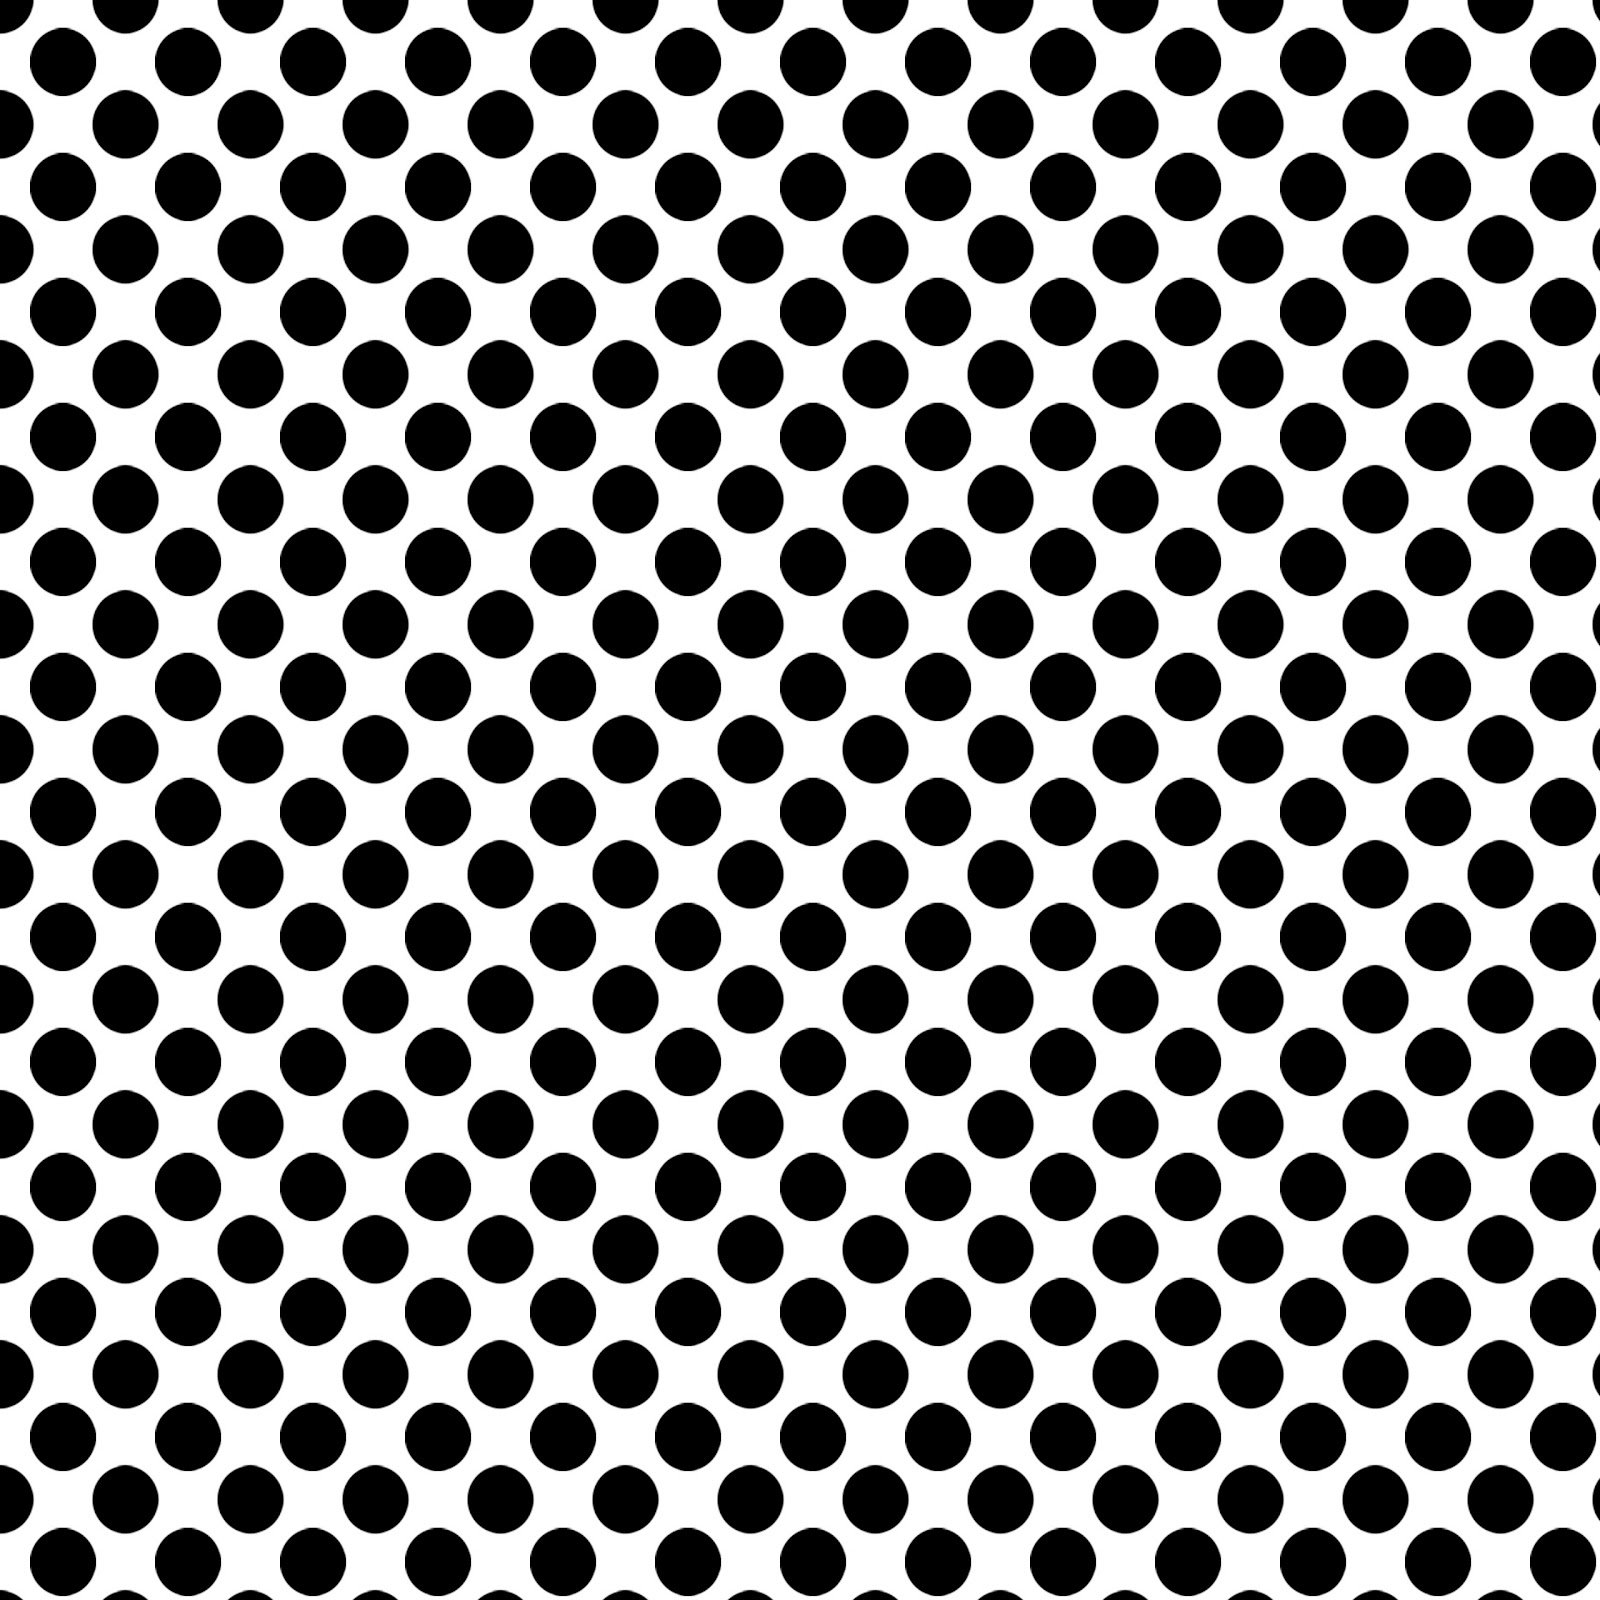 ... STaMPS**: Free Digital Scrapbook Paper - White w/ Black Polka Dots